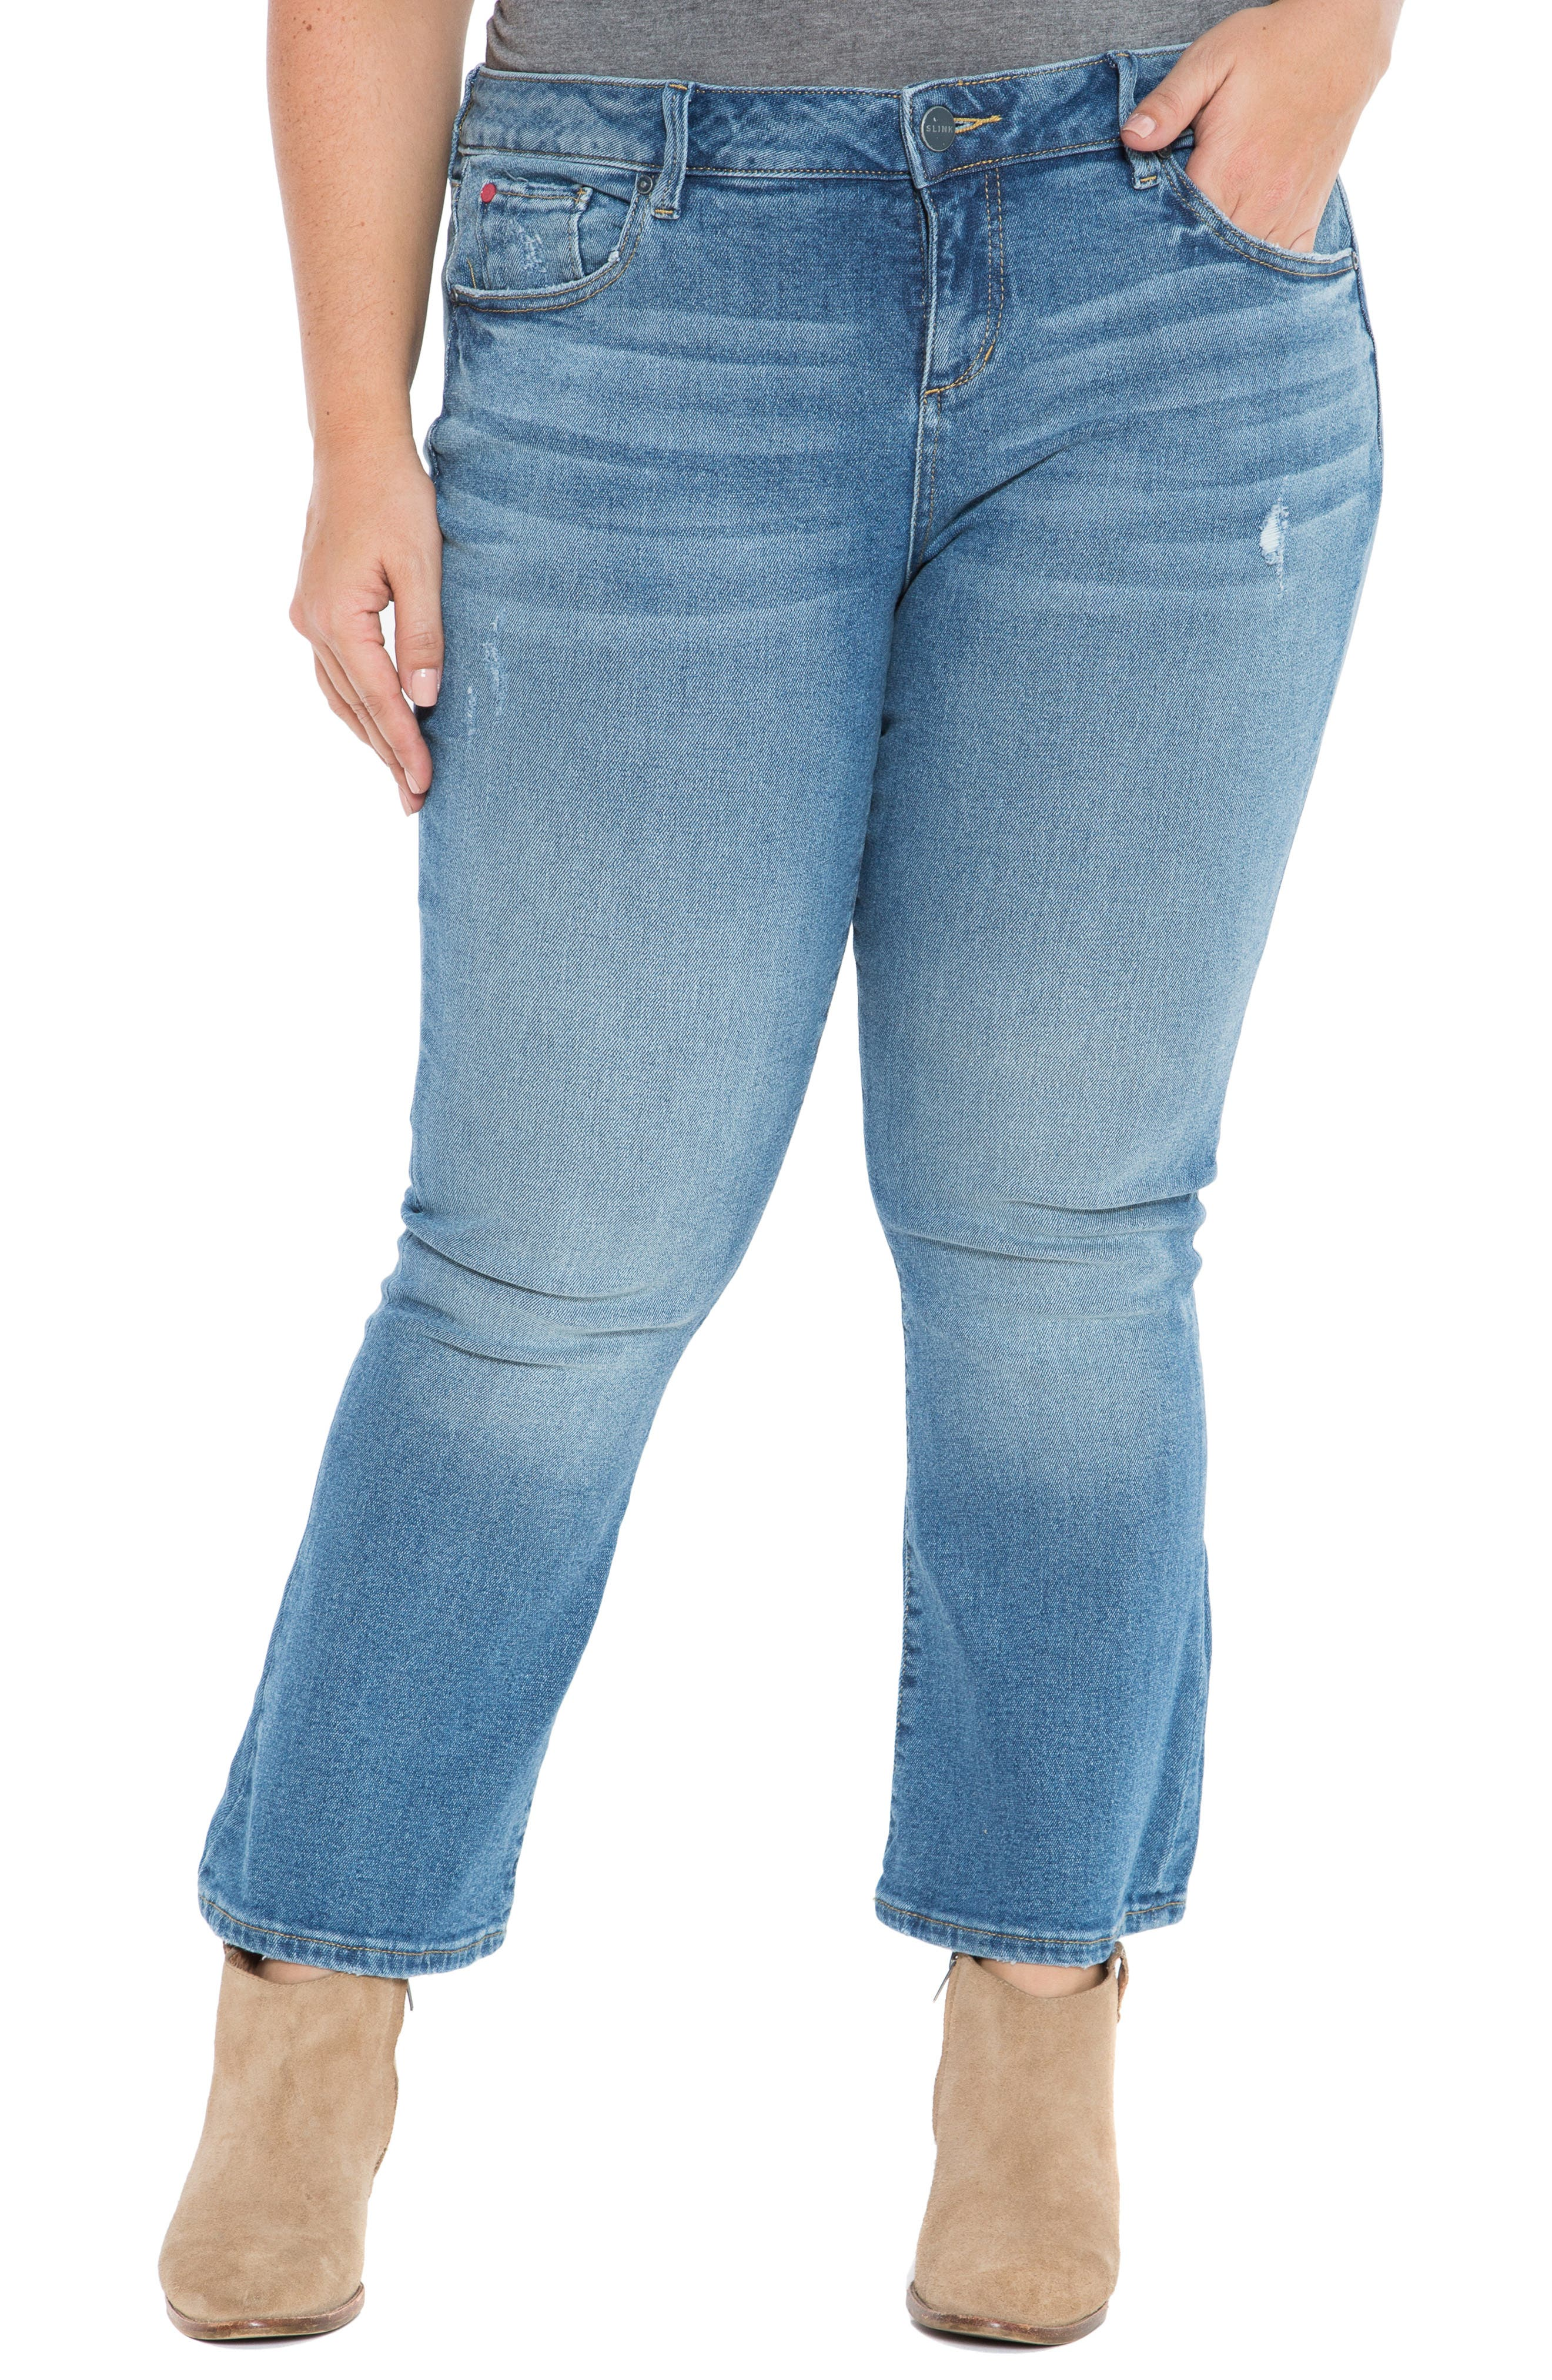 SLINK JEANS, Crop Flare Jeans, Main thumbnail 1, color, PATTI